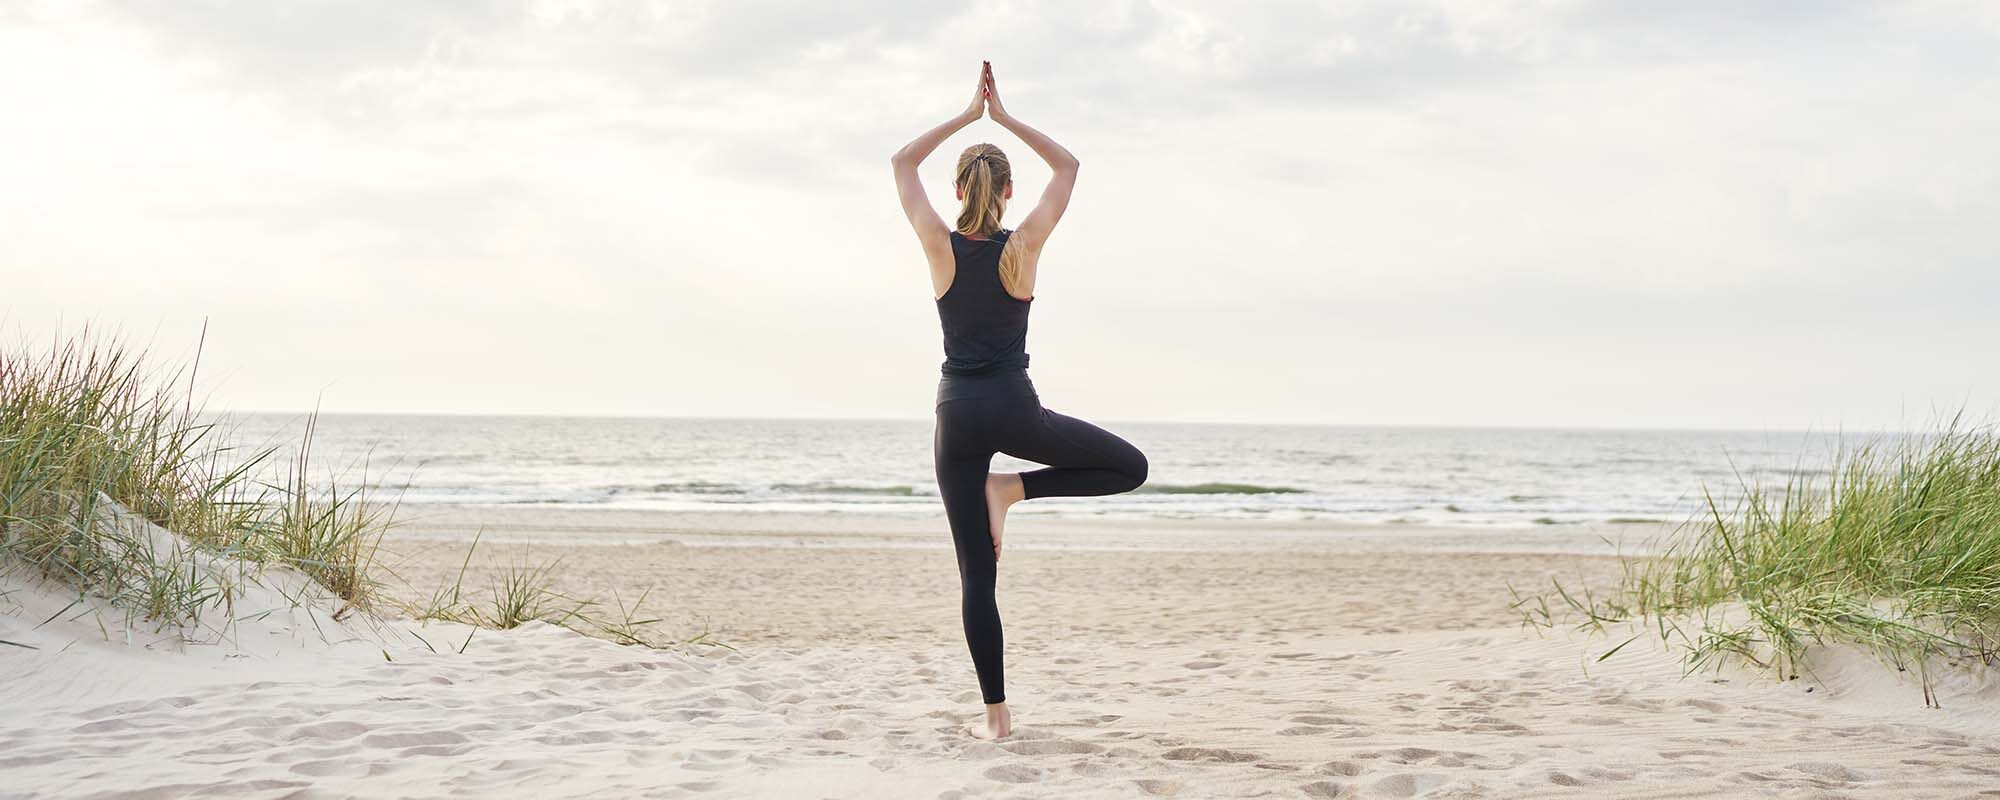 Using the Healing Power of Your Own Body